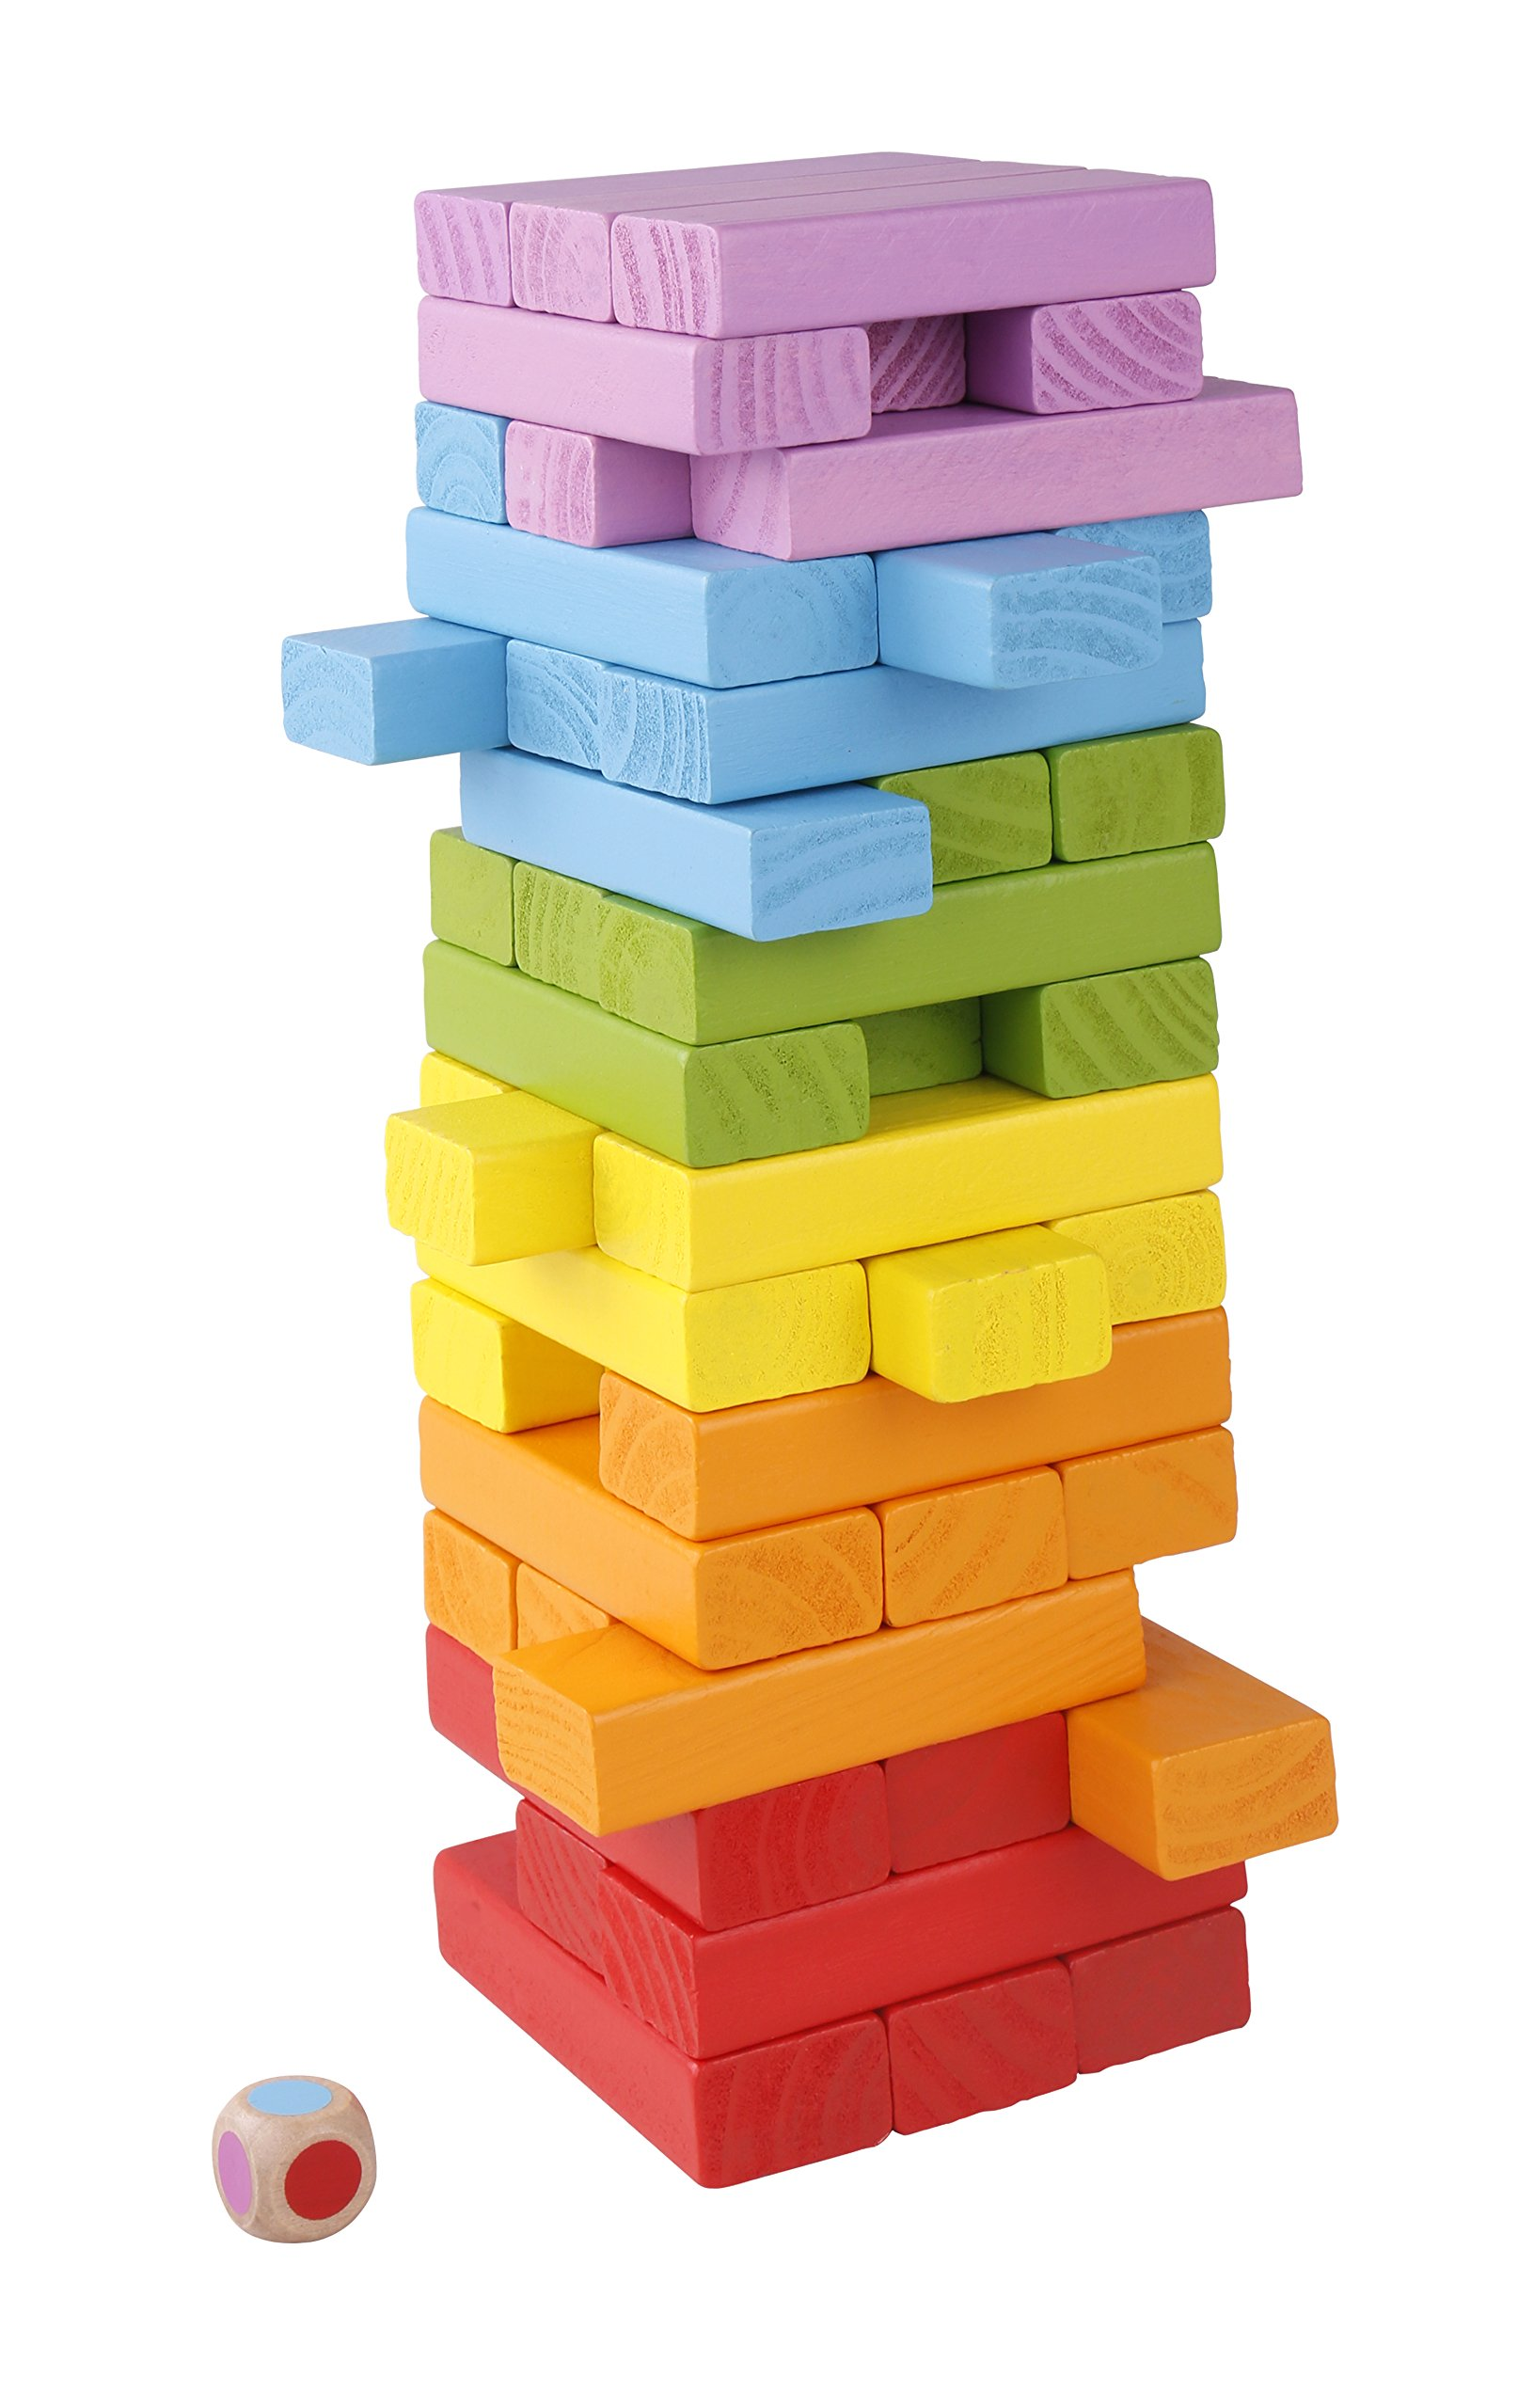 Pidoko Kids Wooden Board Games - Stacking and Tumbling Colored Blocks - 48 Pieces Premium Quality Set Tower and Dice by Pidoko Kids